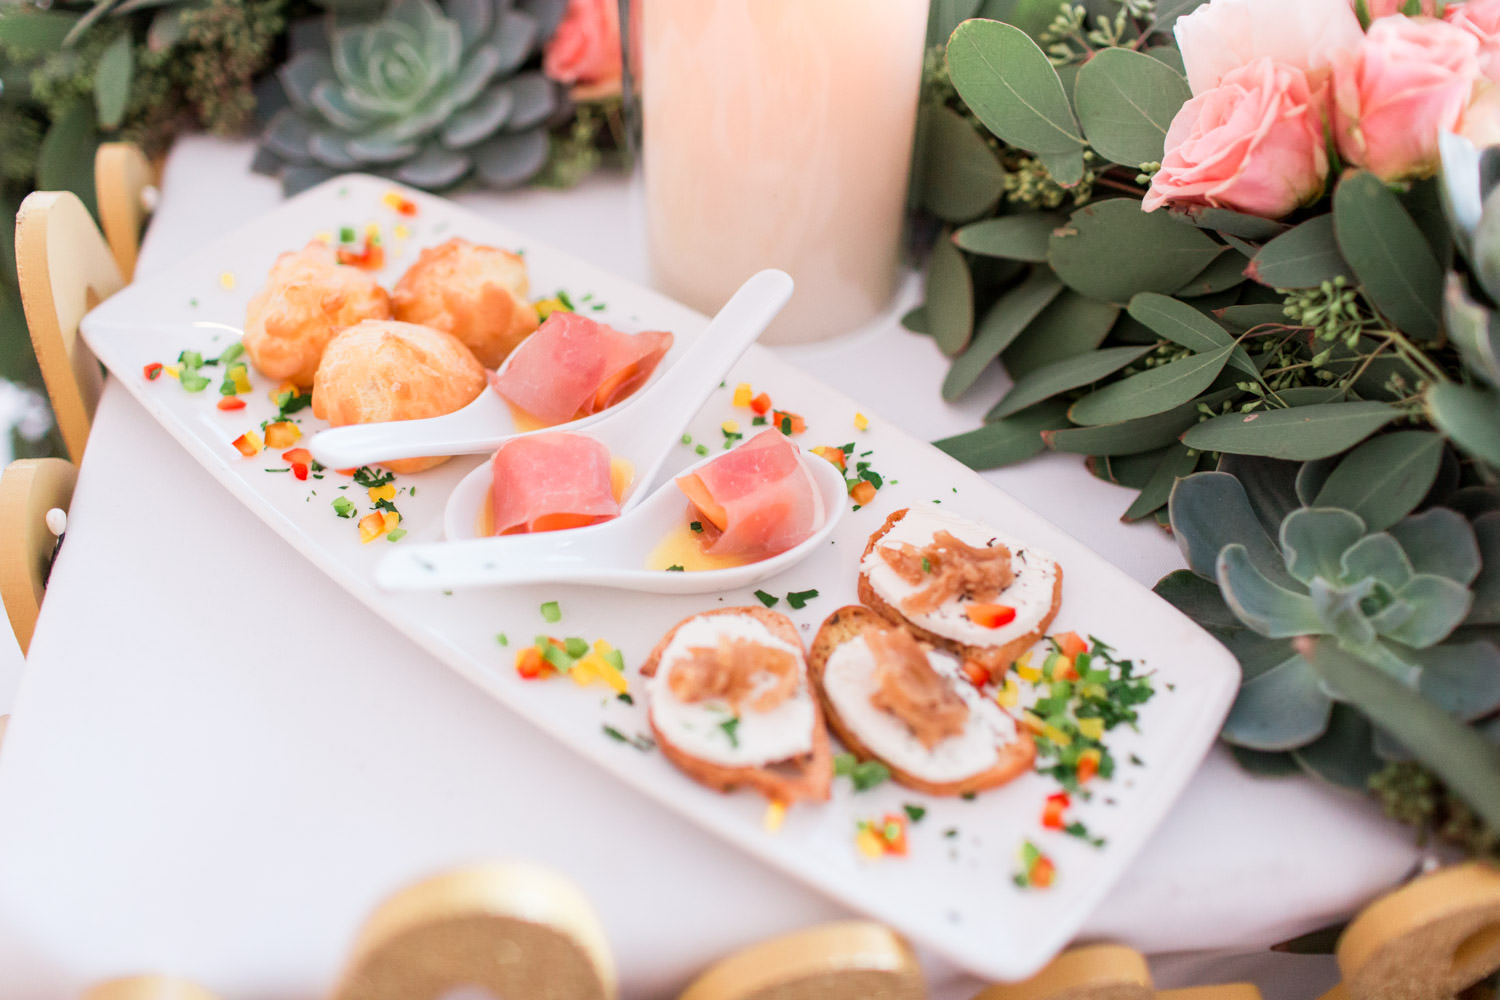 Appetizers and h'ordeuvres table at Indian Wells Golf Resort reception pavilion, white tables and chairs with pink and green arrangements, Cavin Elizabeth Photography